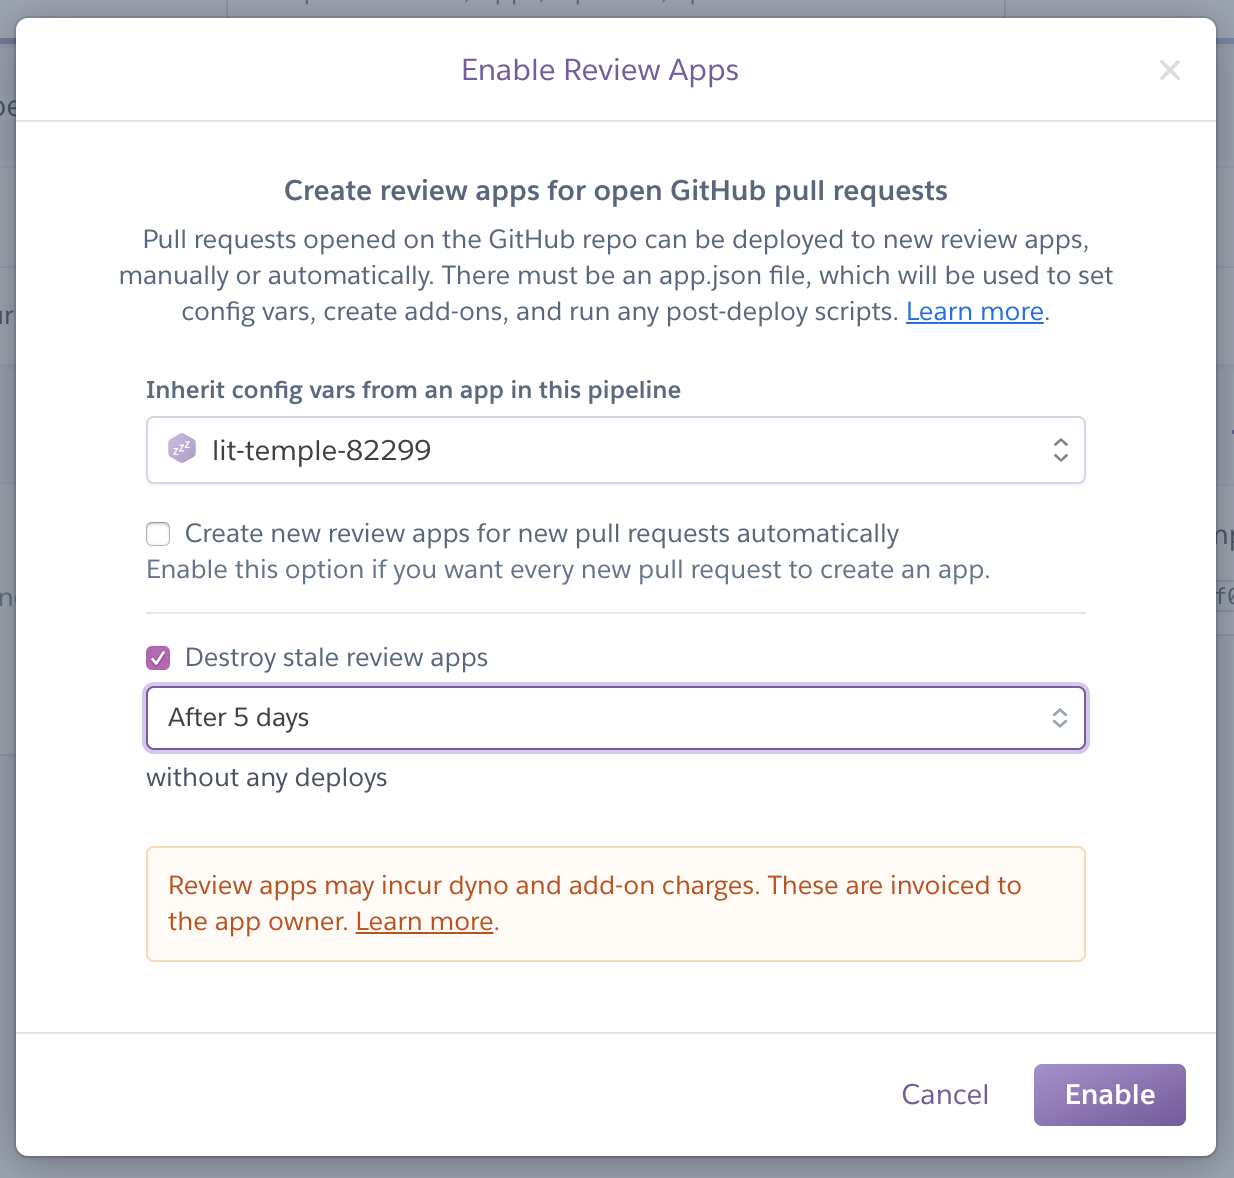 Initial set-up of Review apps